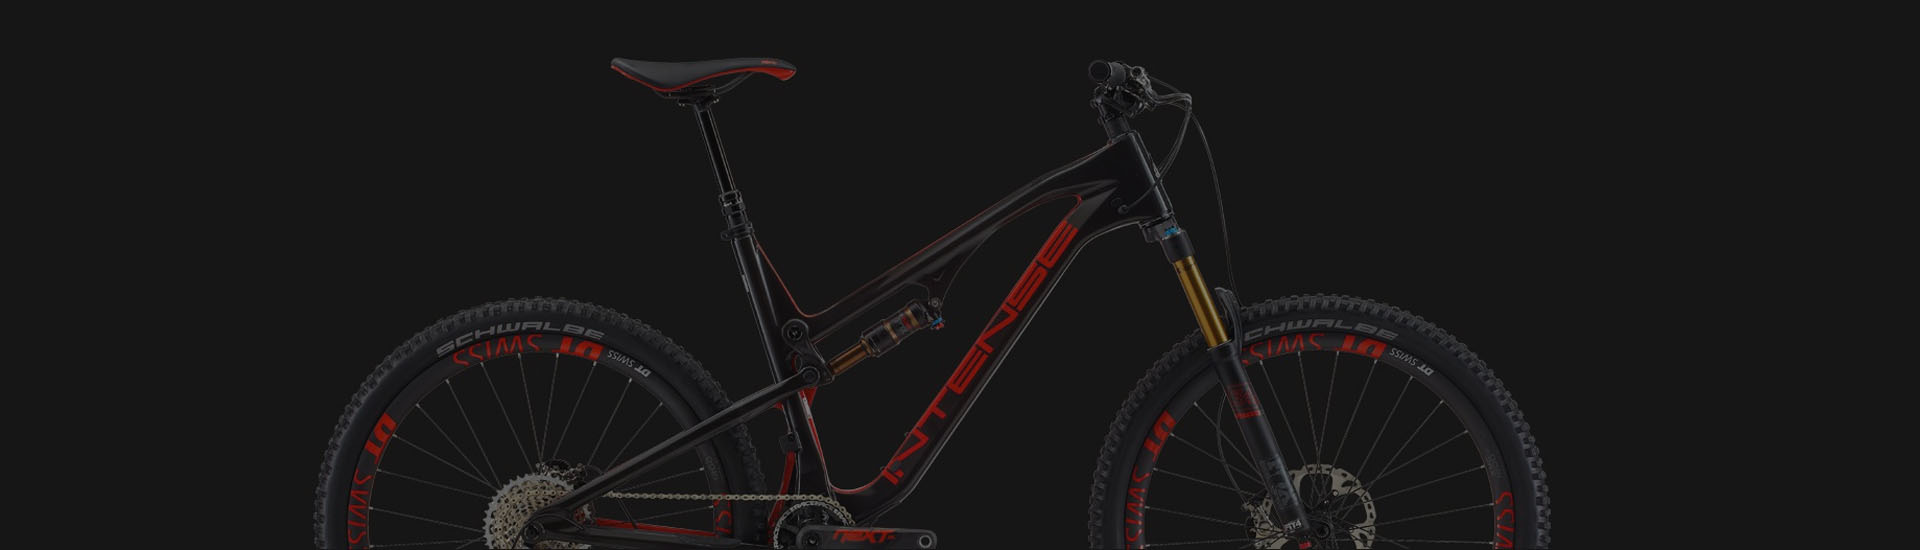 Intense Cycles Colorado Springs Ascent Cycling Free shipping with $50 minimum purchase. intense cycles colorado springs